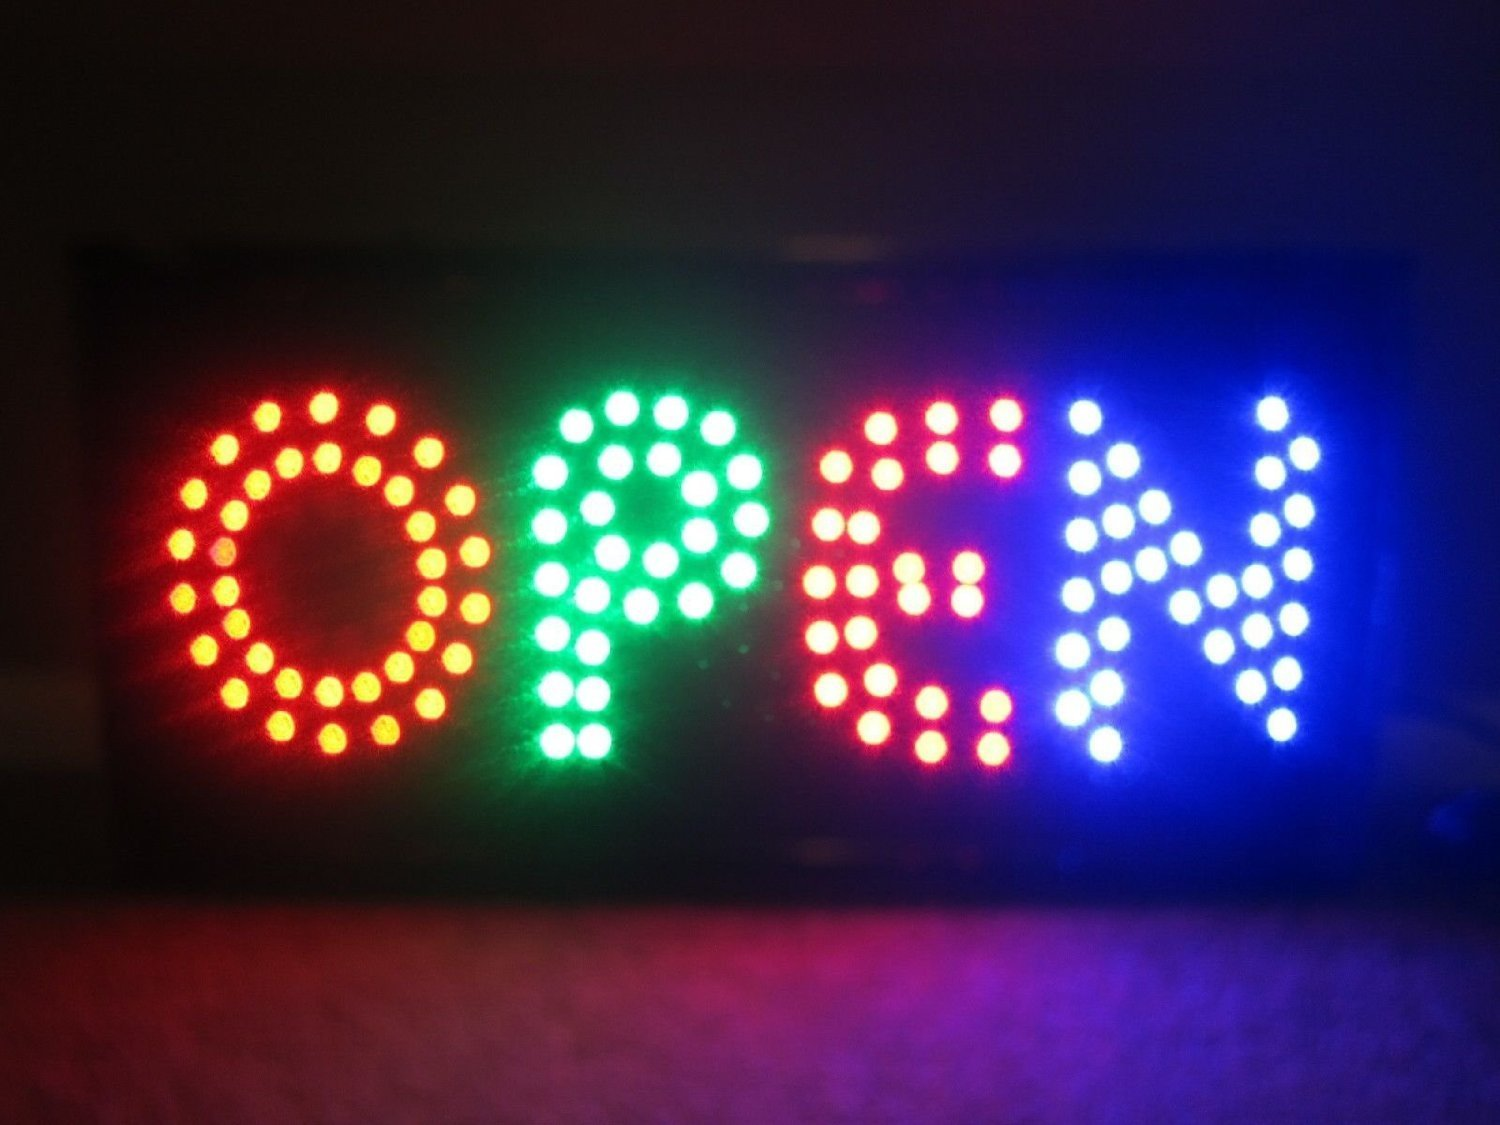 2xhome open sign large letters high visible bright colors led moving flashing neon sign motion light chain 19x10 for business drink restaurant diner